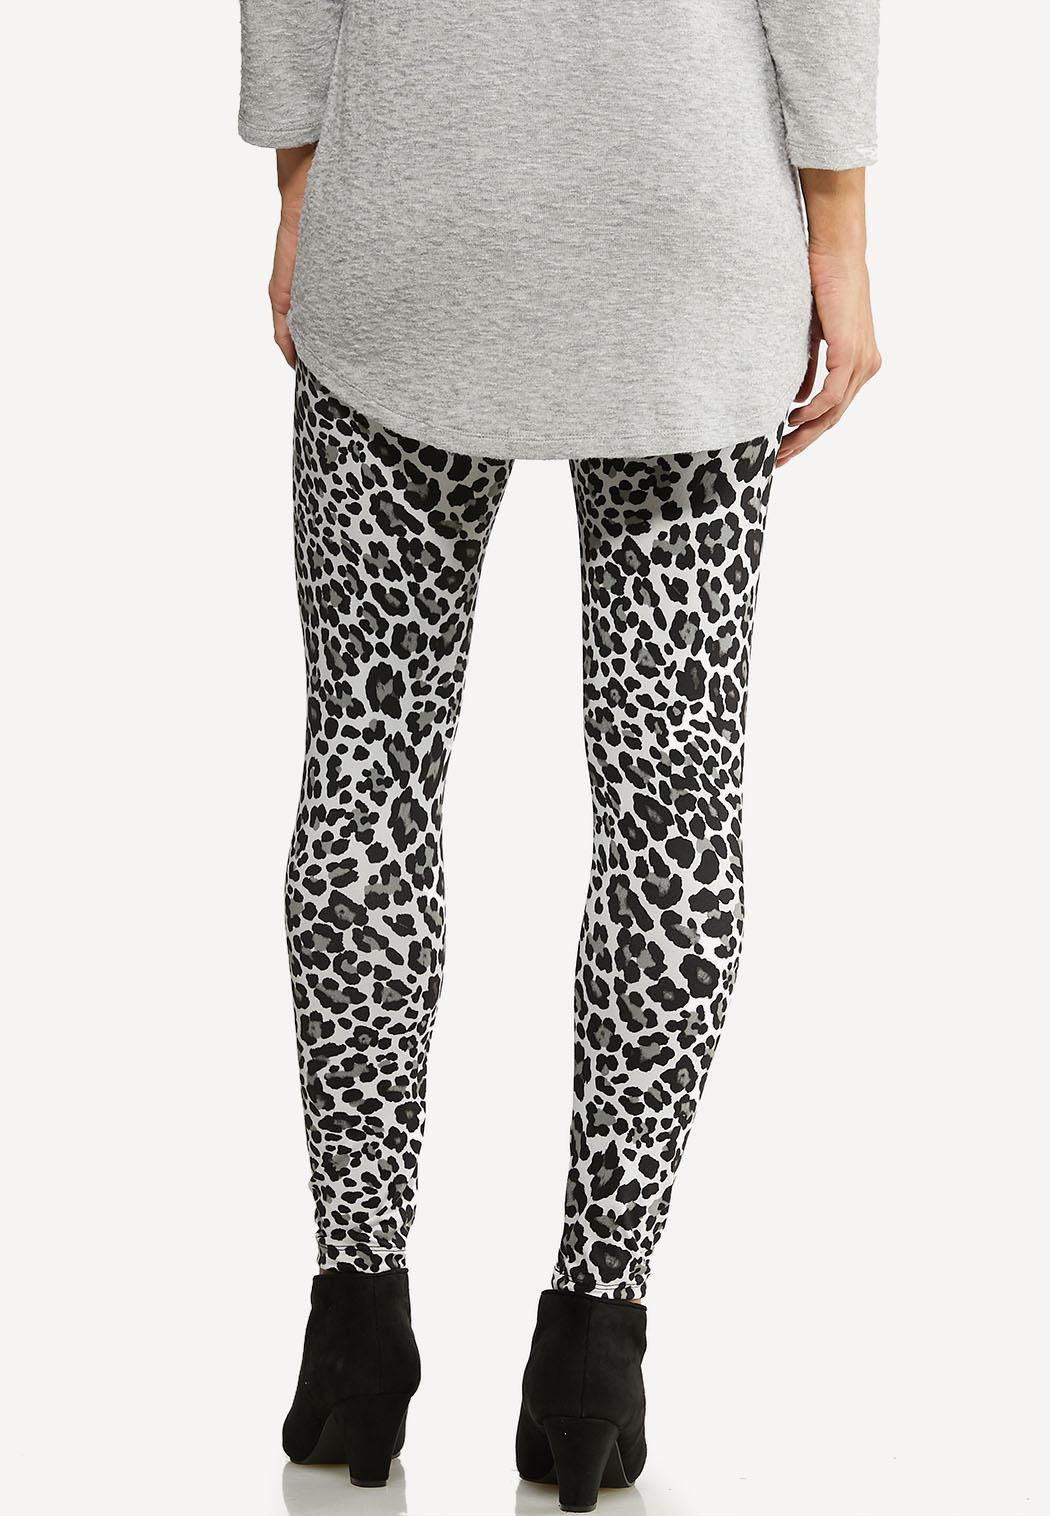 Leopard Leggings (Item #43990408)